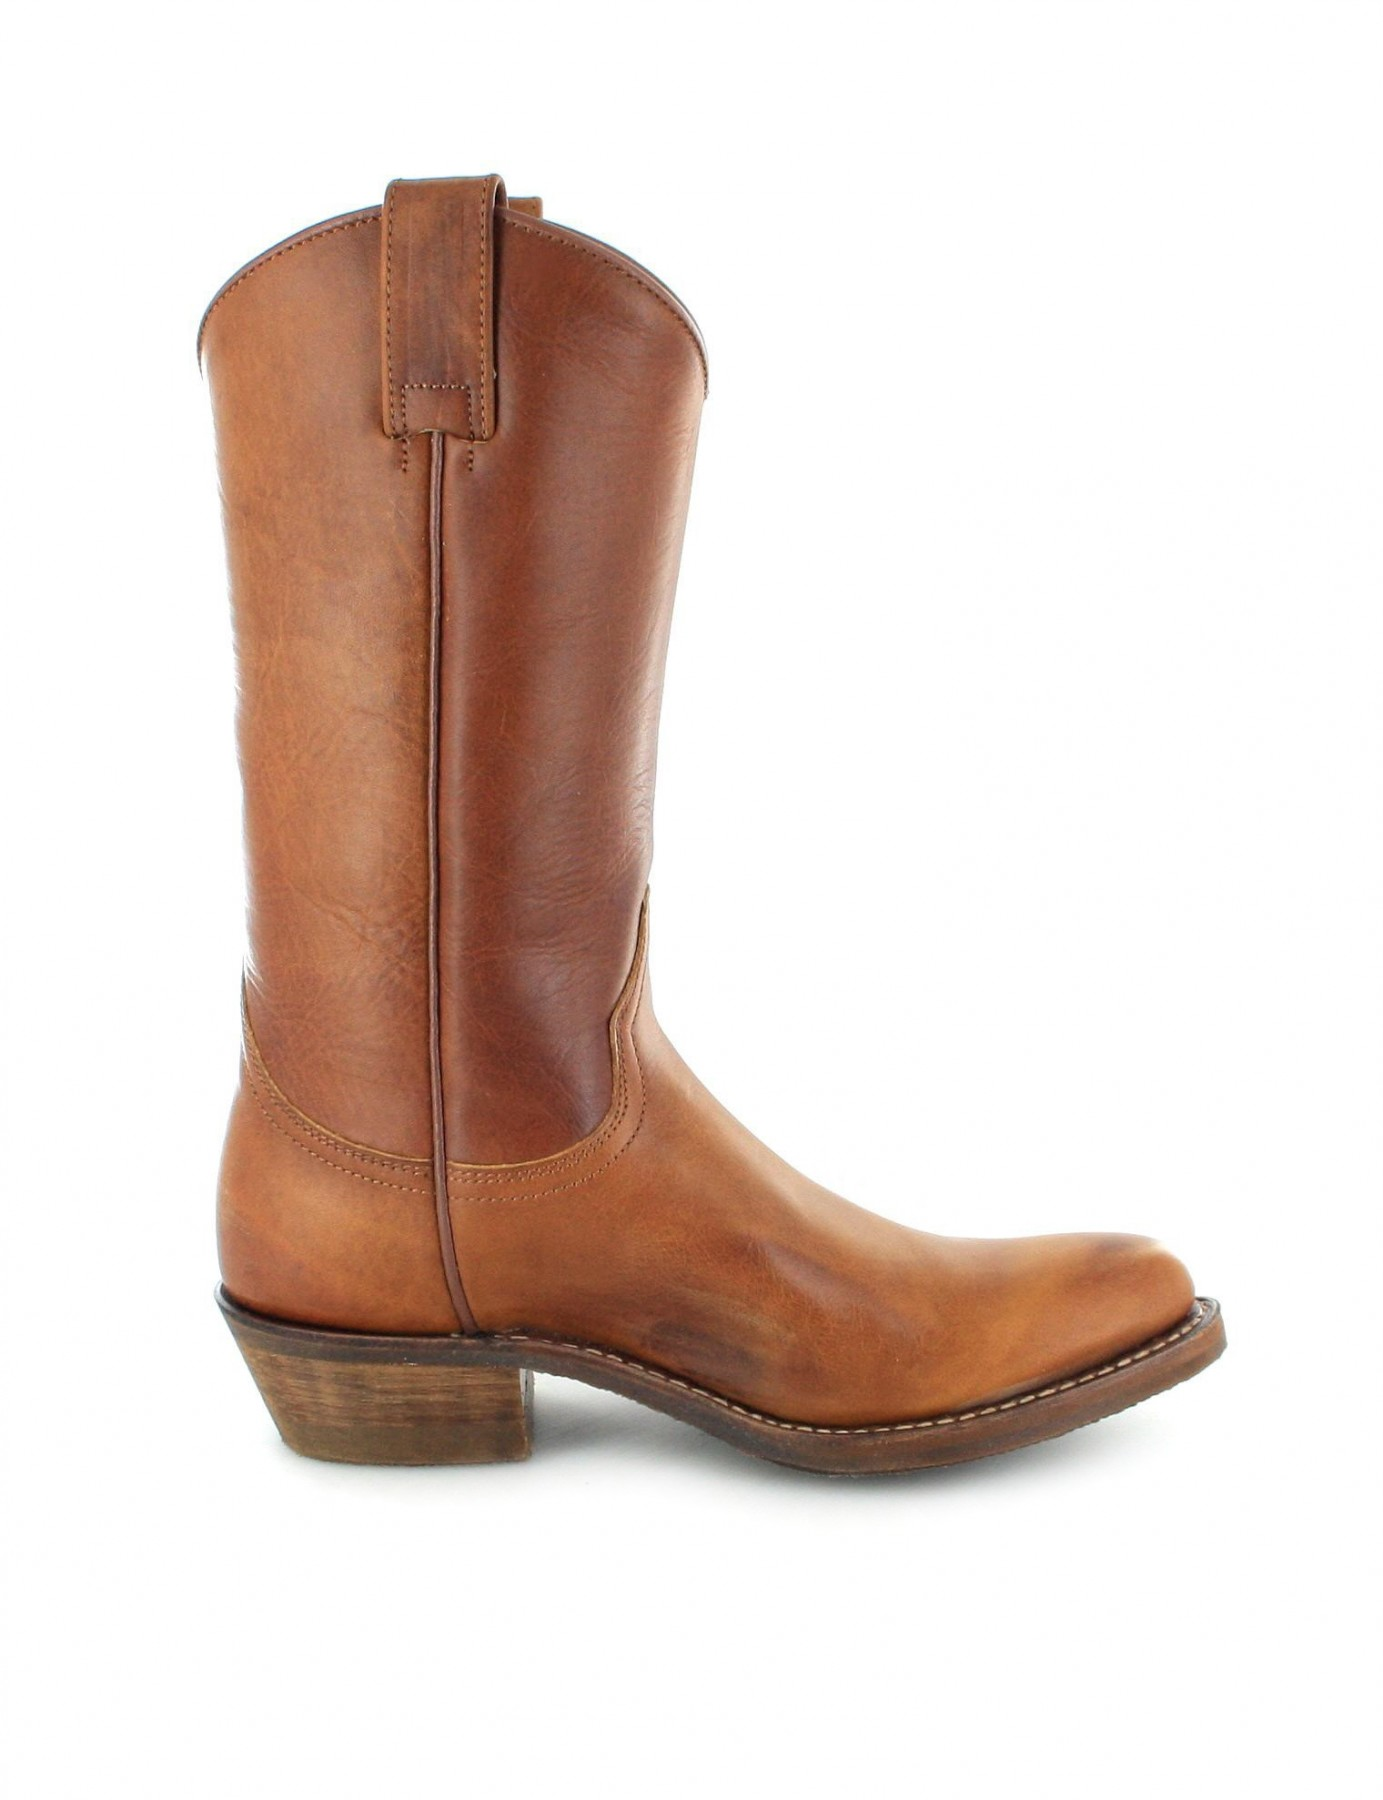 sendra boots 5588 tang western boot brown fashion boots. Black Bedroom Furniture Sets. Home Design Ideas